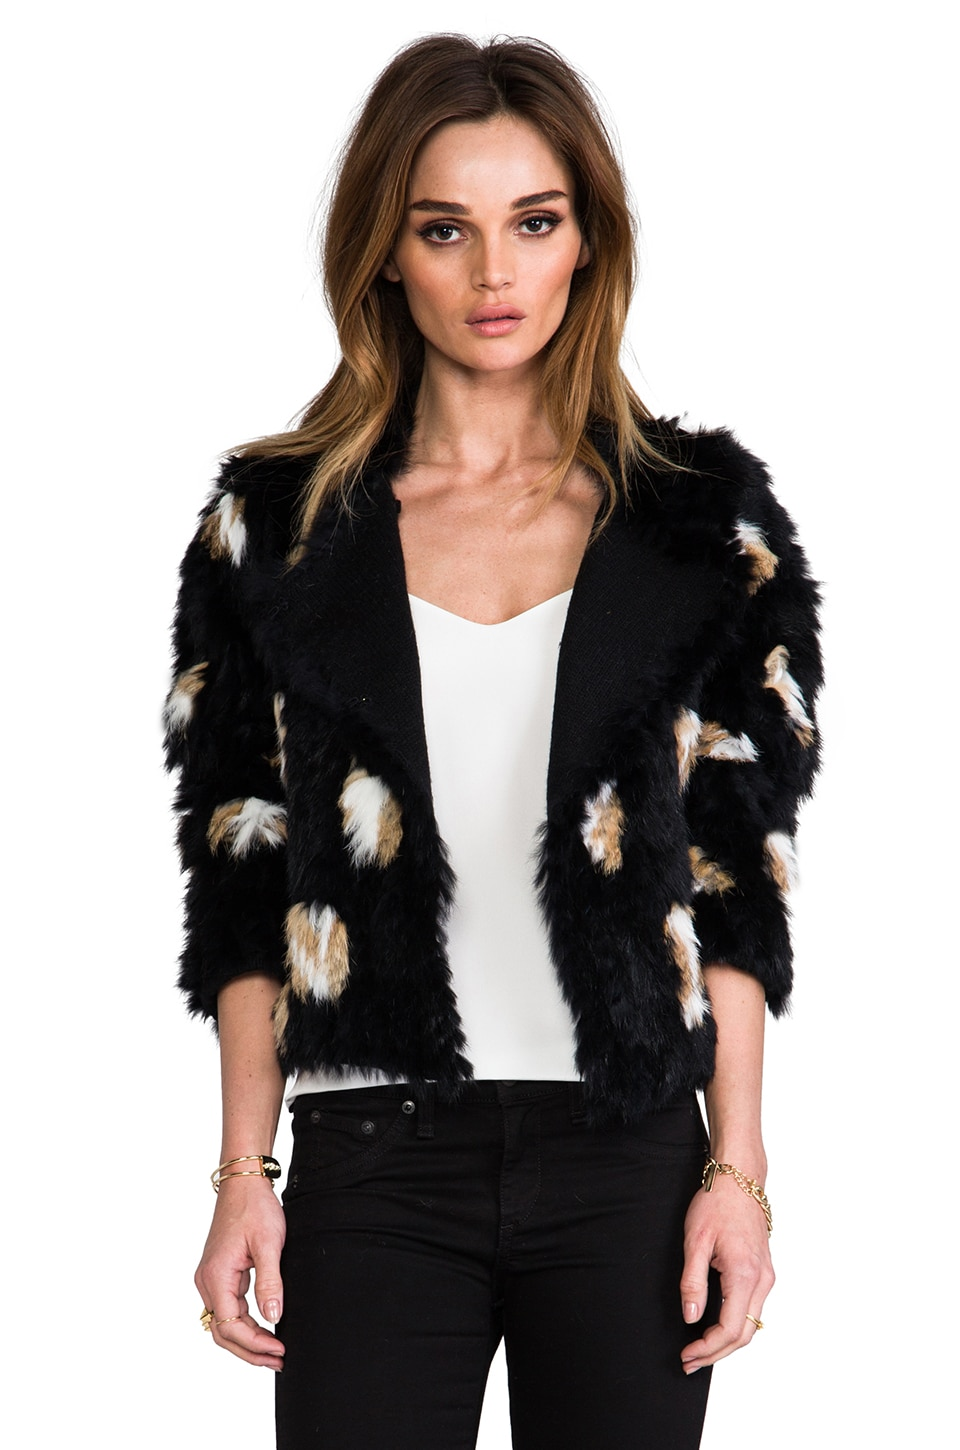 Marc by Marc Jacobs Jacq Rabbit Jacket in Black Pepper